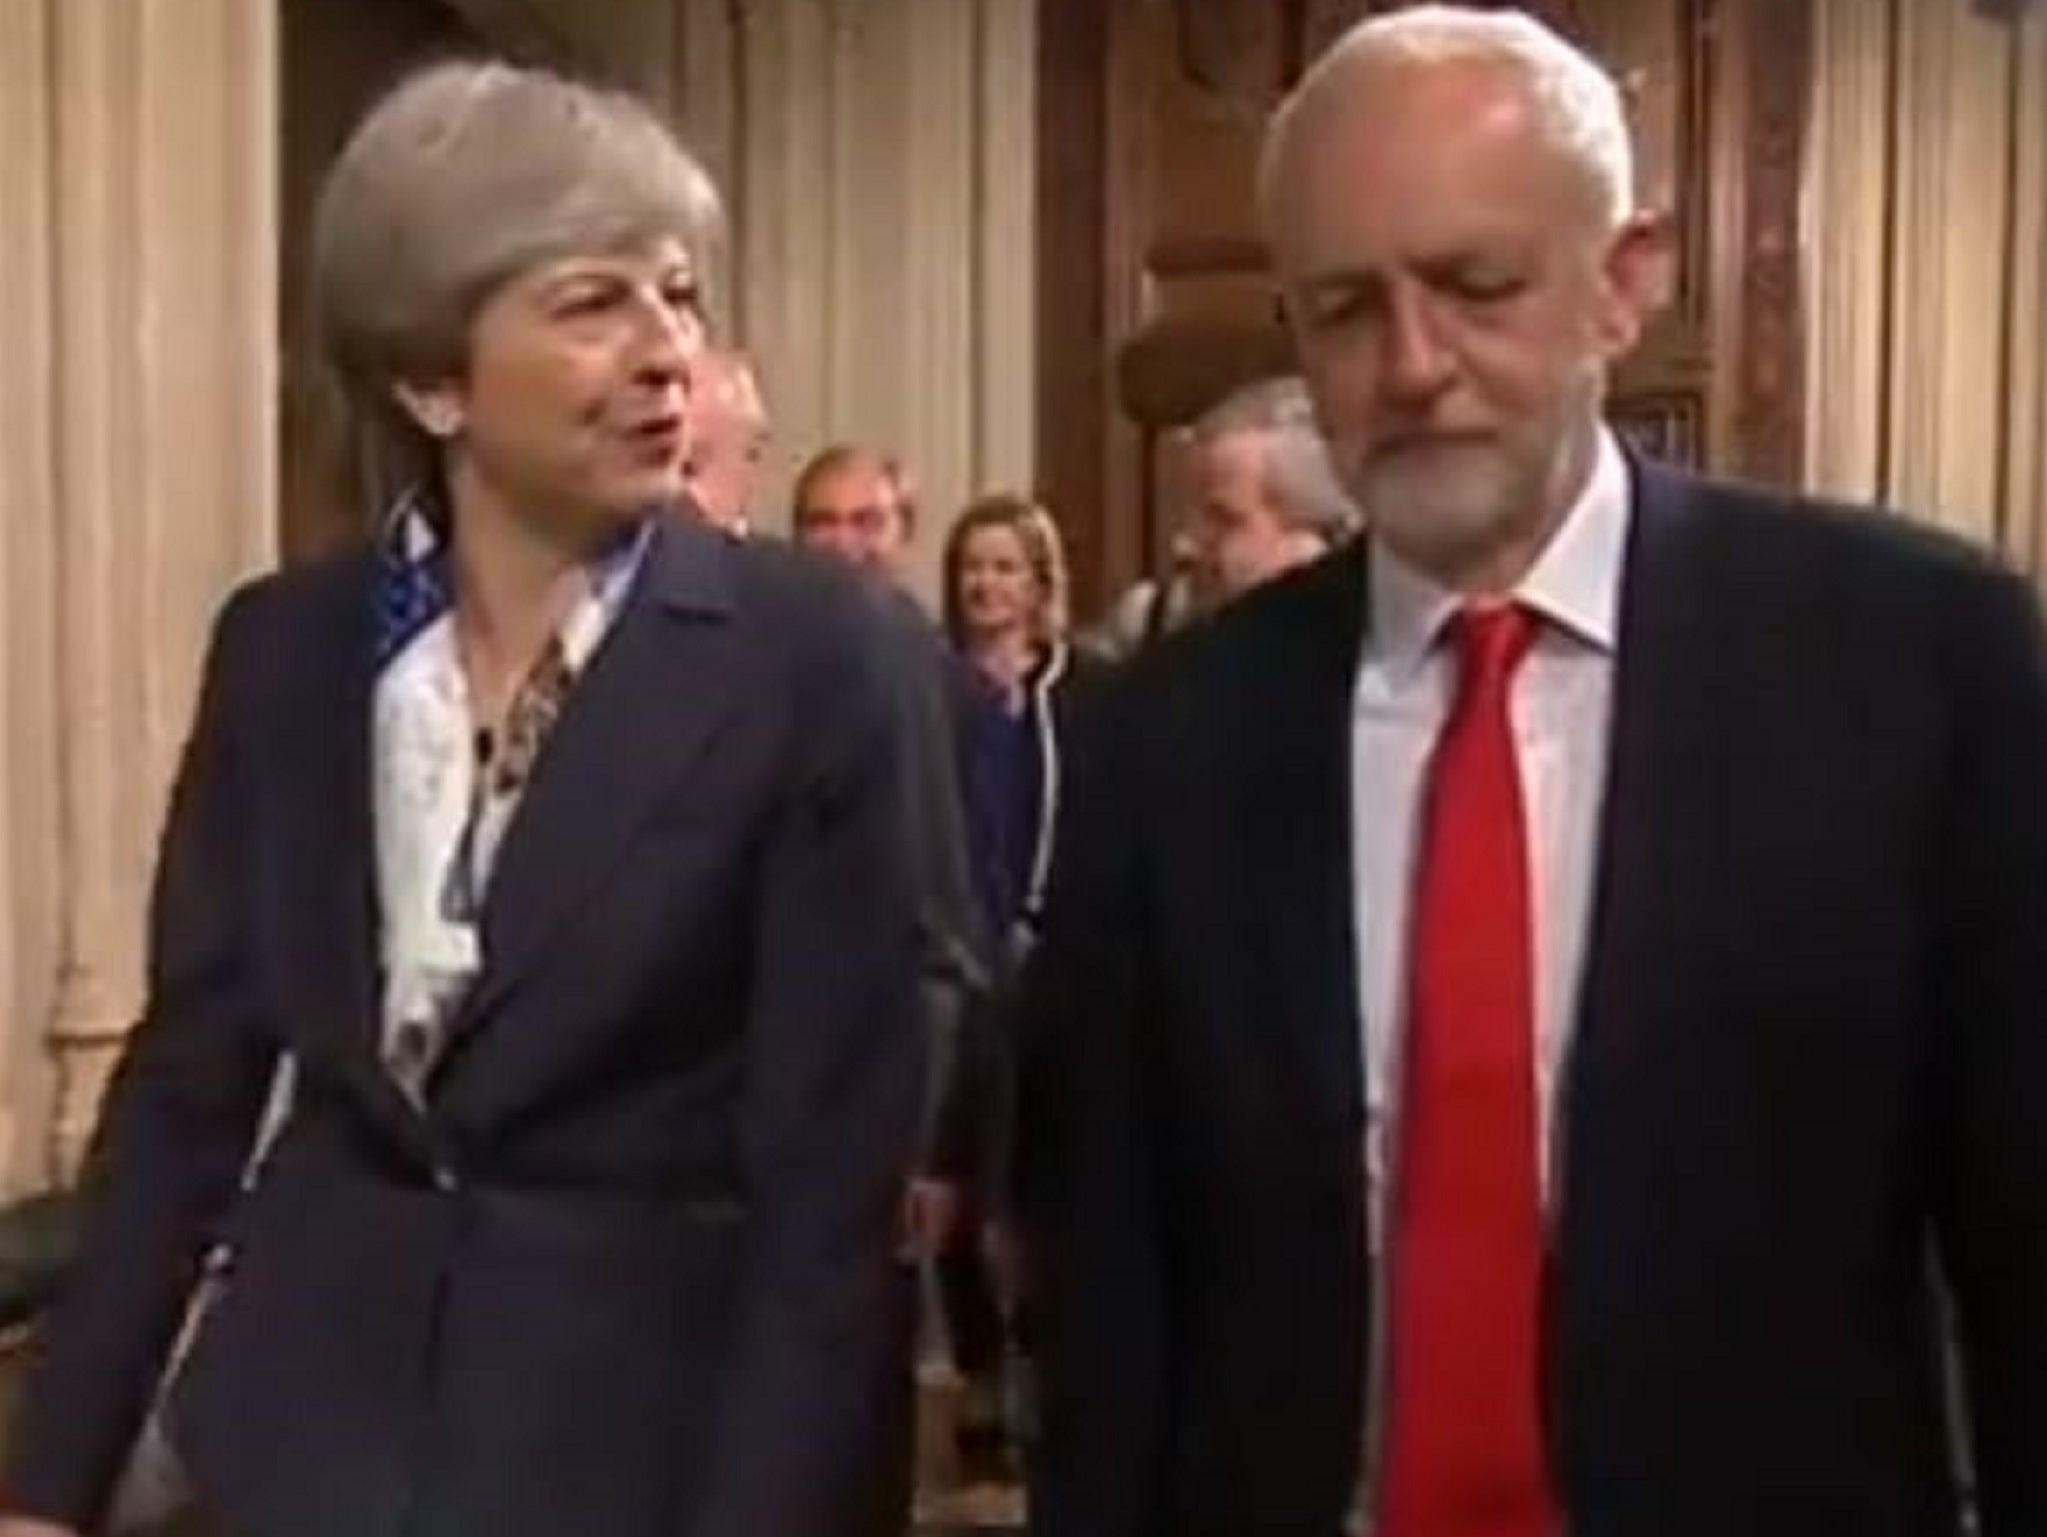 What did theresa may say to jeremy corbyn during the queen s speech a lipreader deciphers the exchange the independent